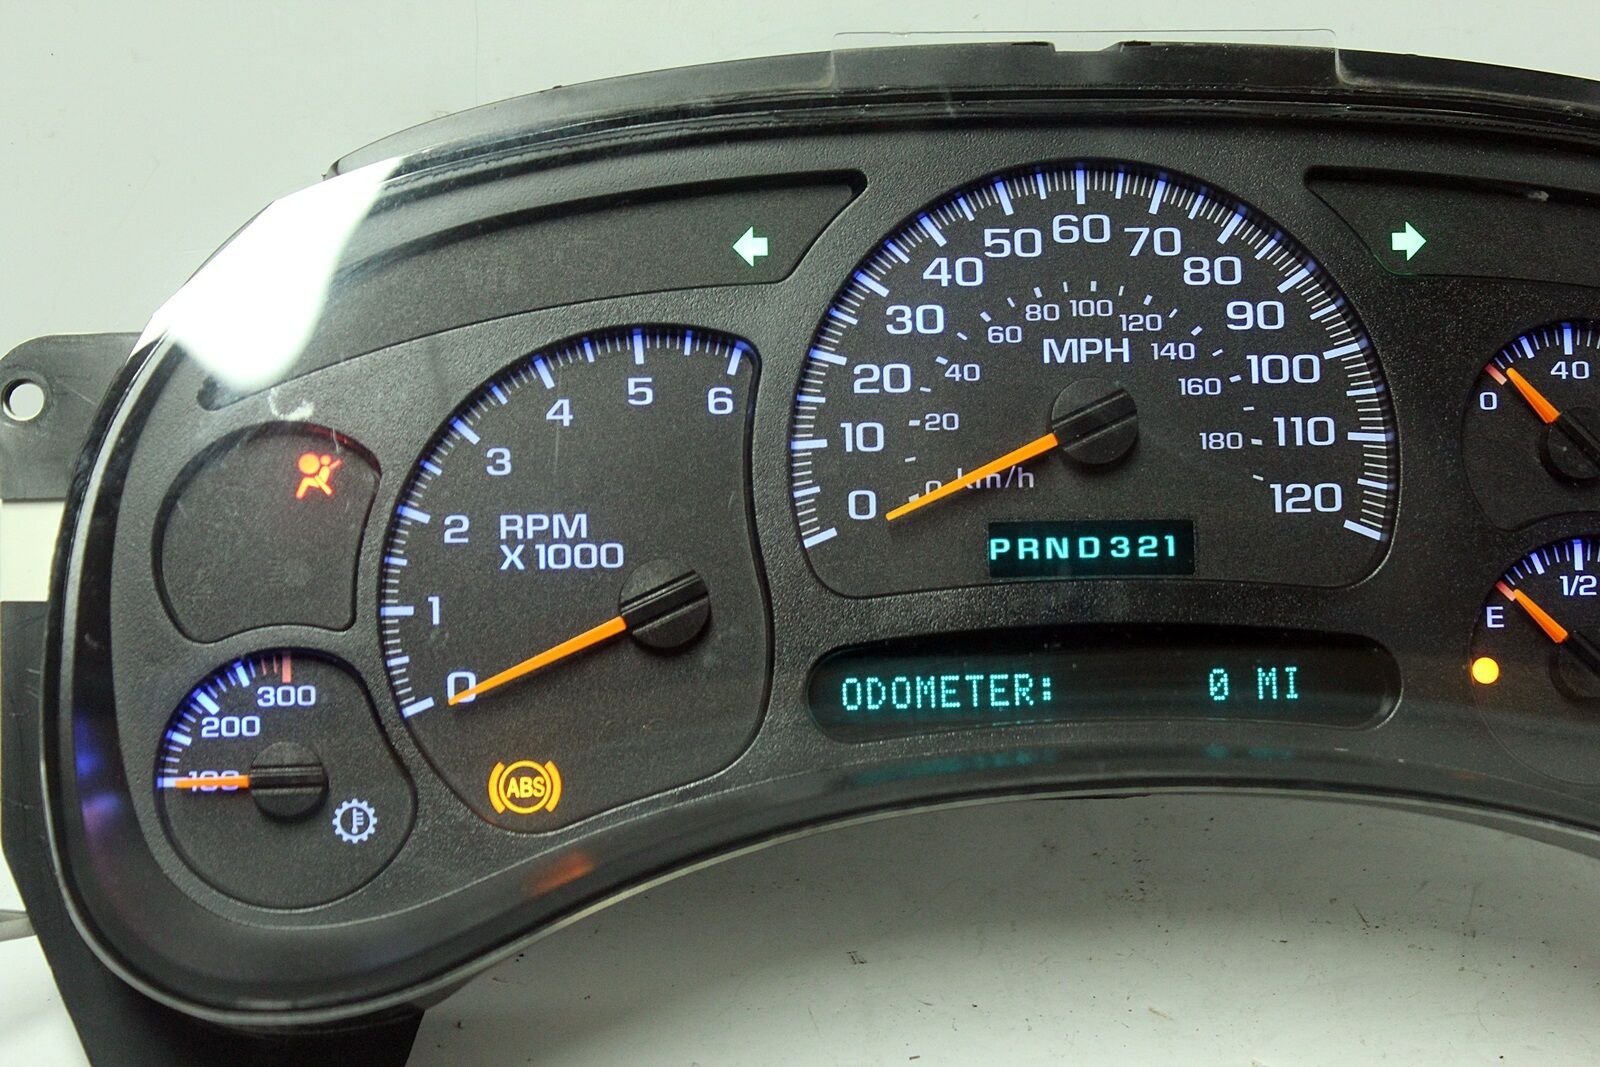 Silverado 2003 chevy silverado dash cluster : Used GMC Yukon XL 2500 Instrument Clusters for Sale - Page 9